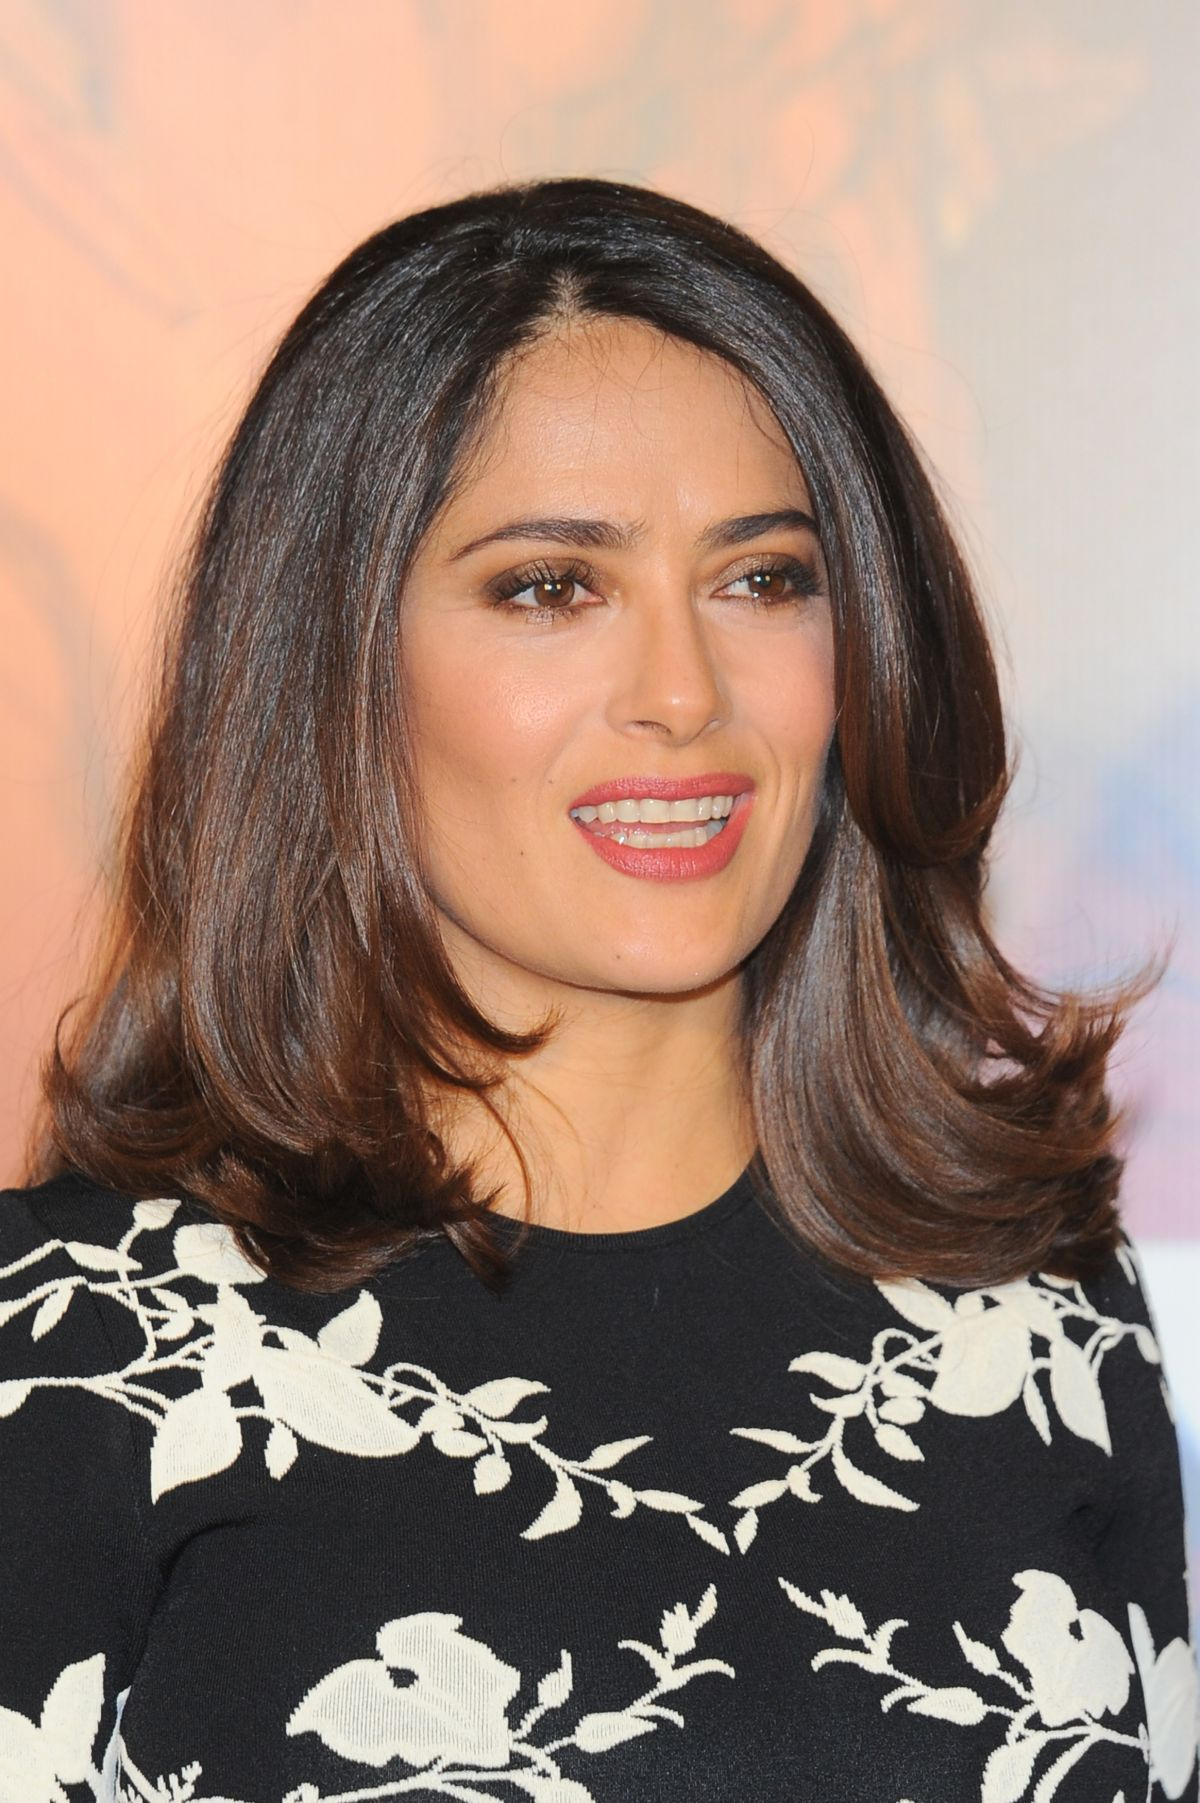 SALMA HAYEK at The Pro... Salma Hayek